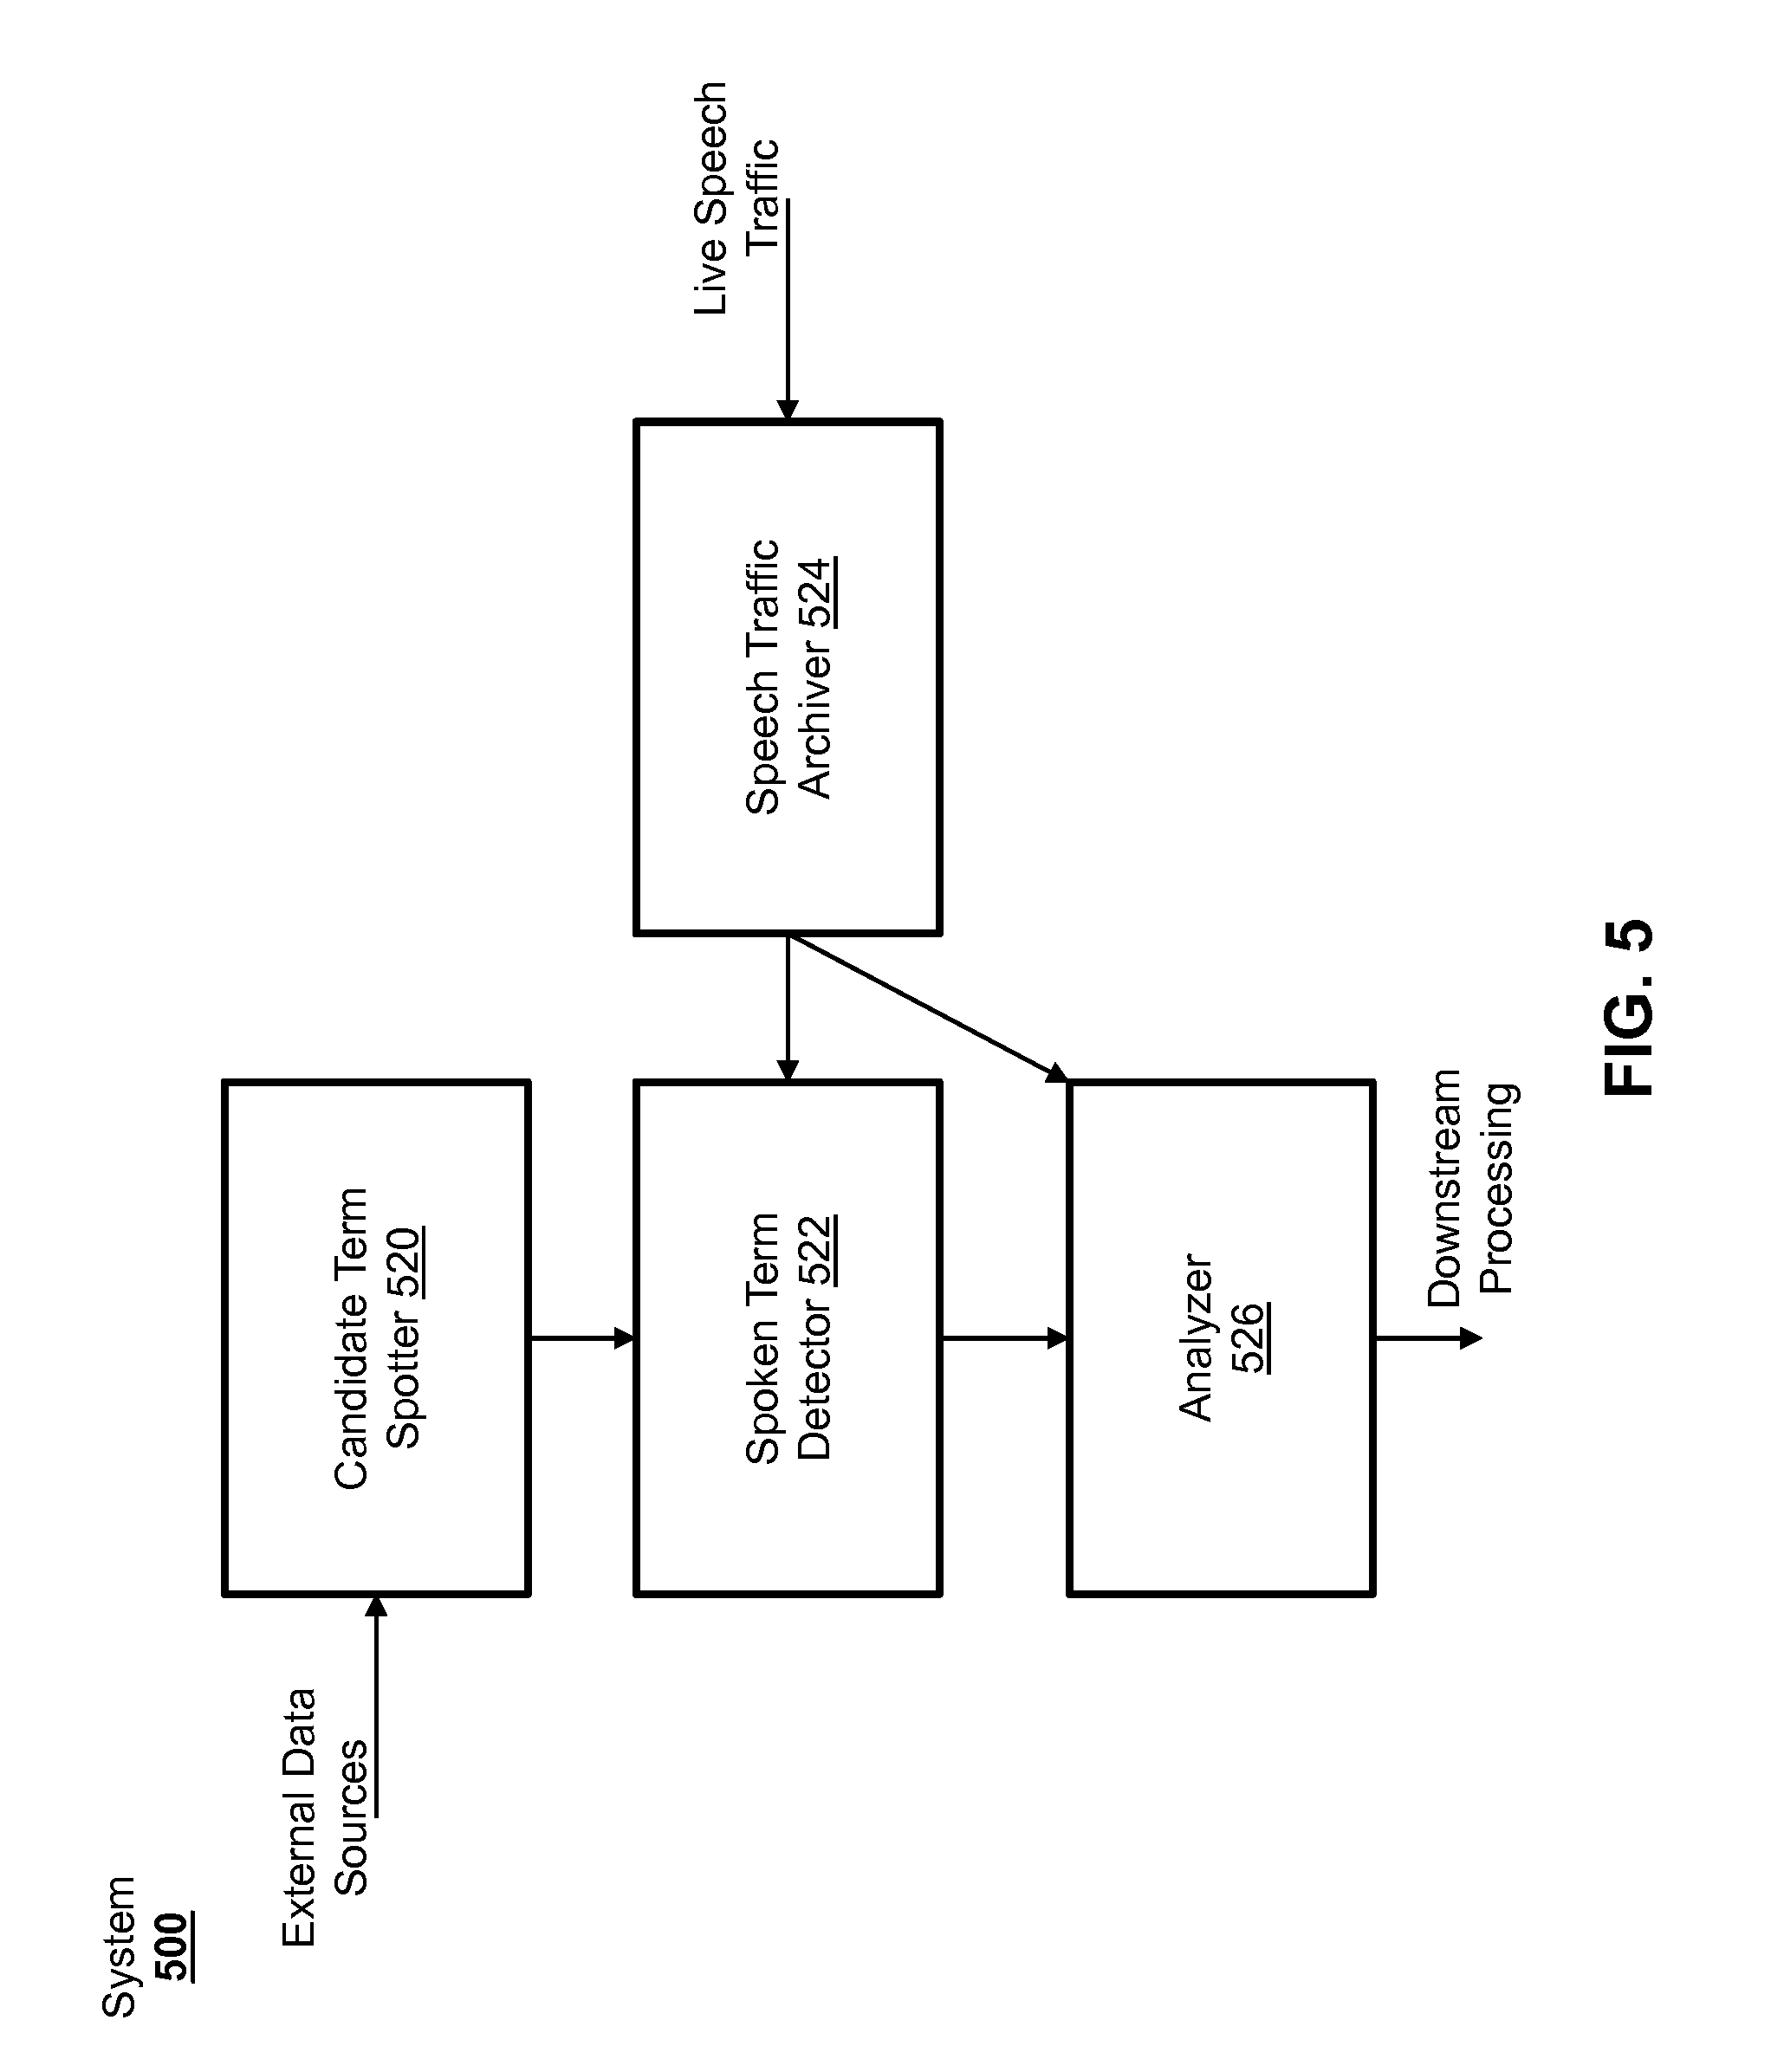 Us9818400b2 Method And Apparatus For Discovering Trending Terms In